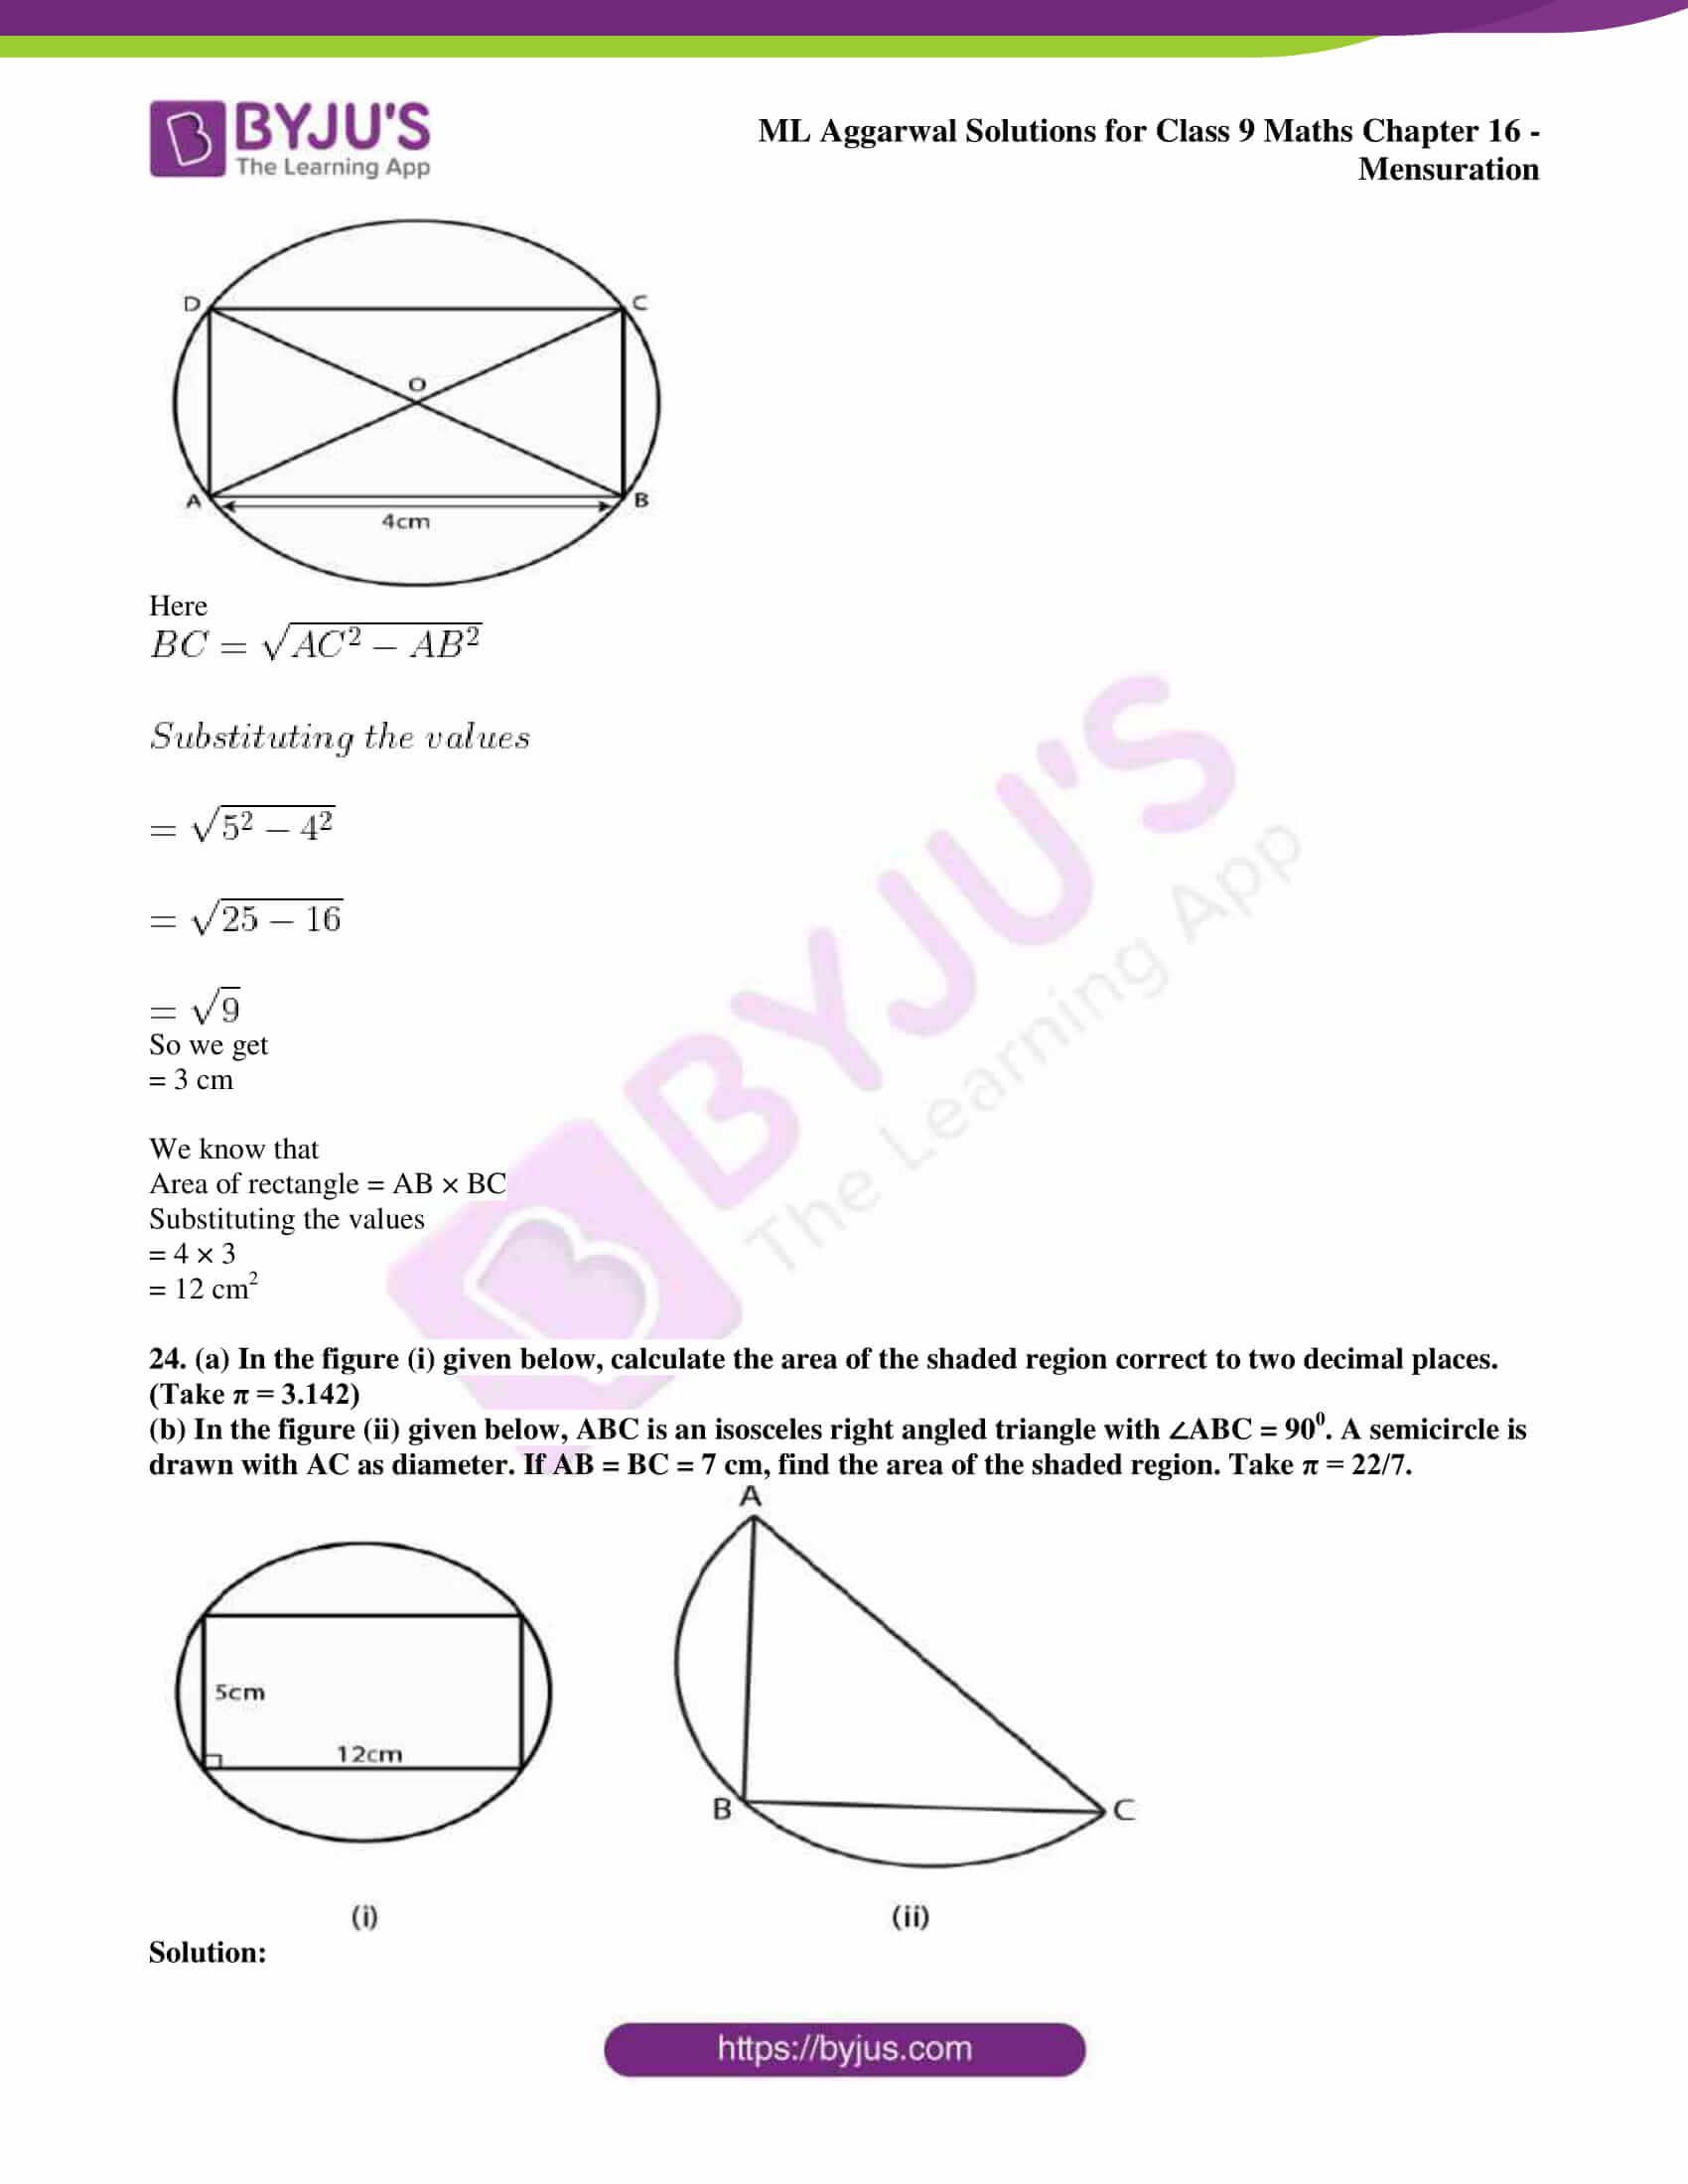 ml aggarwal solutions for class 9 maths chapter 16 091